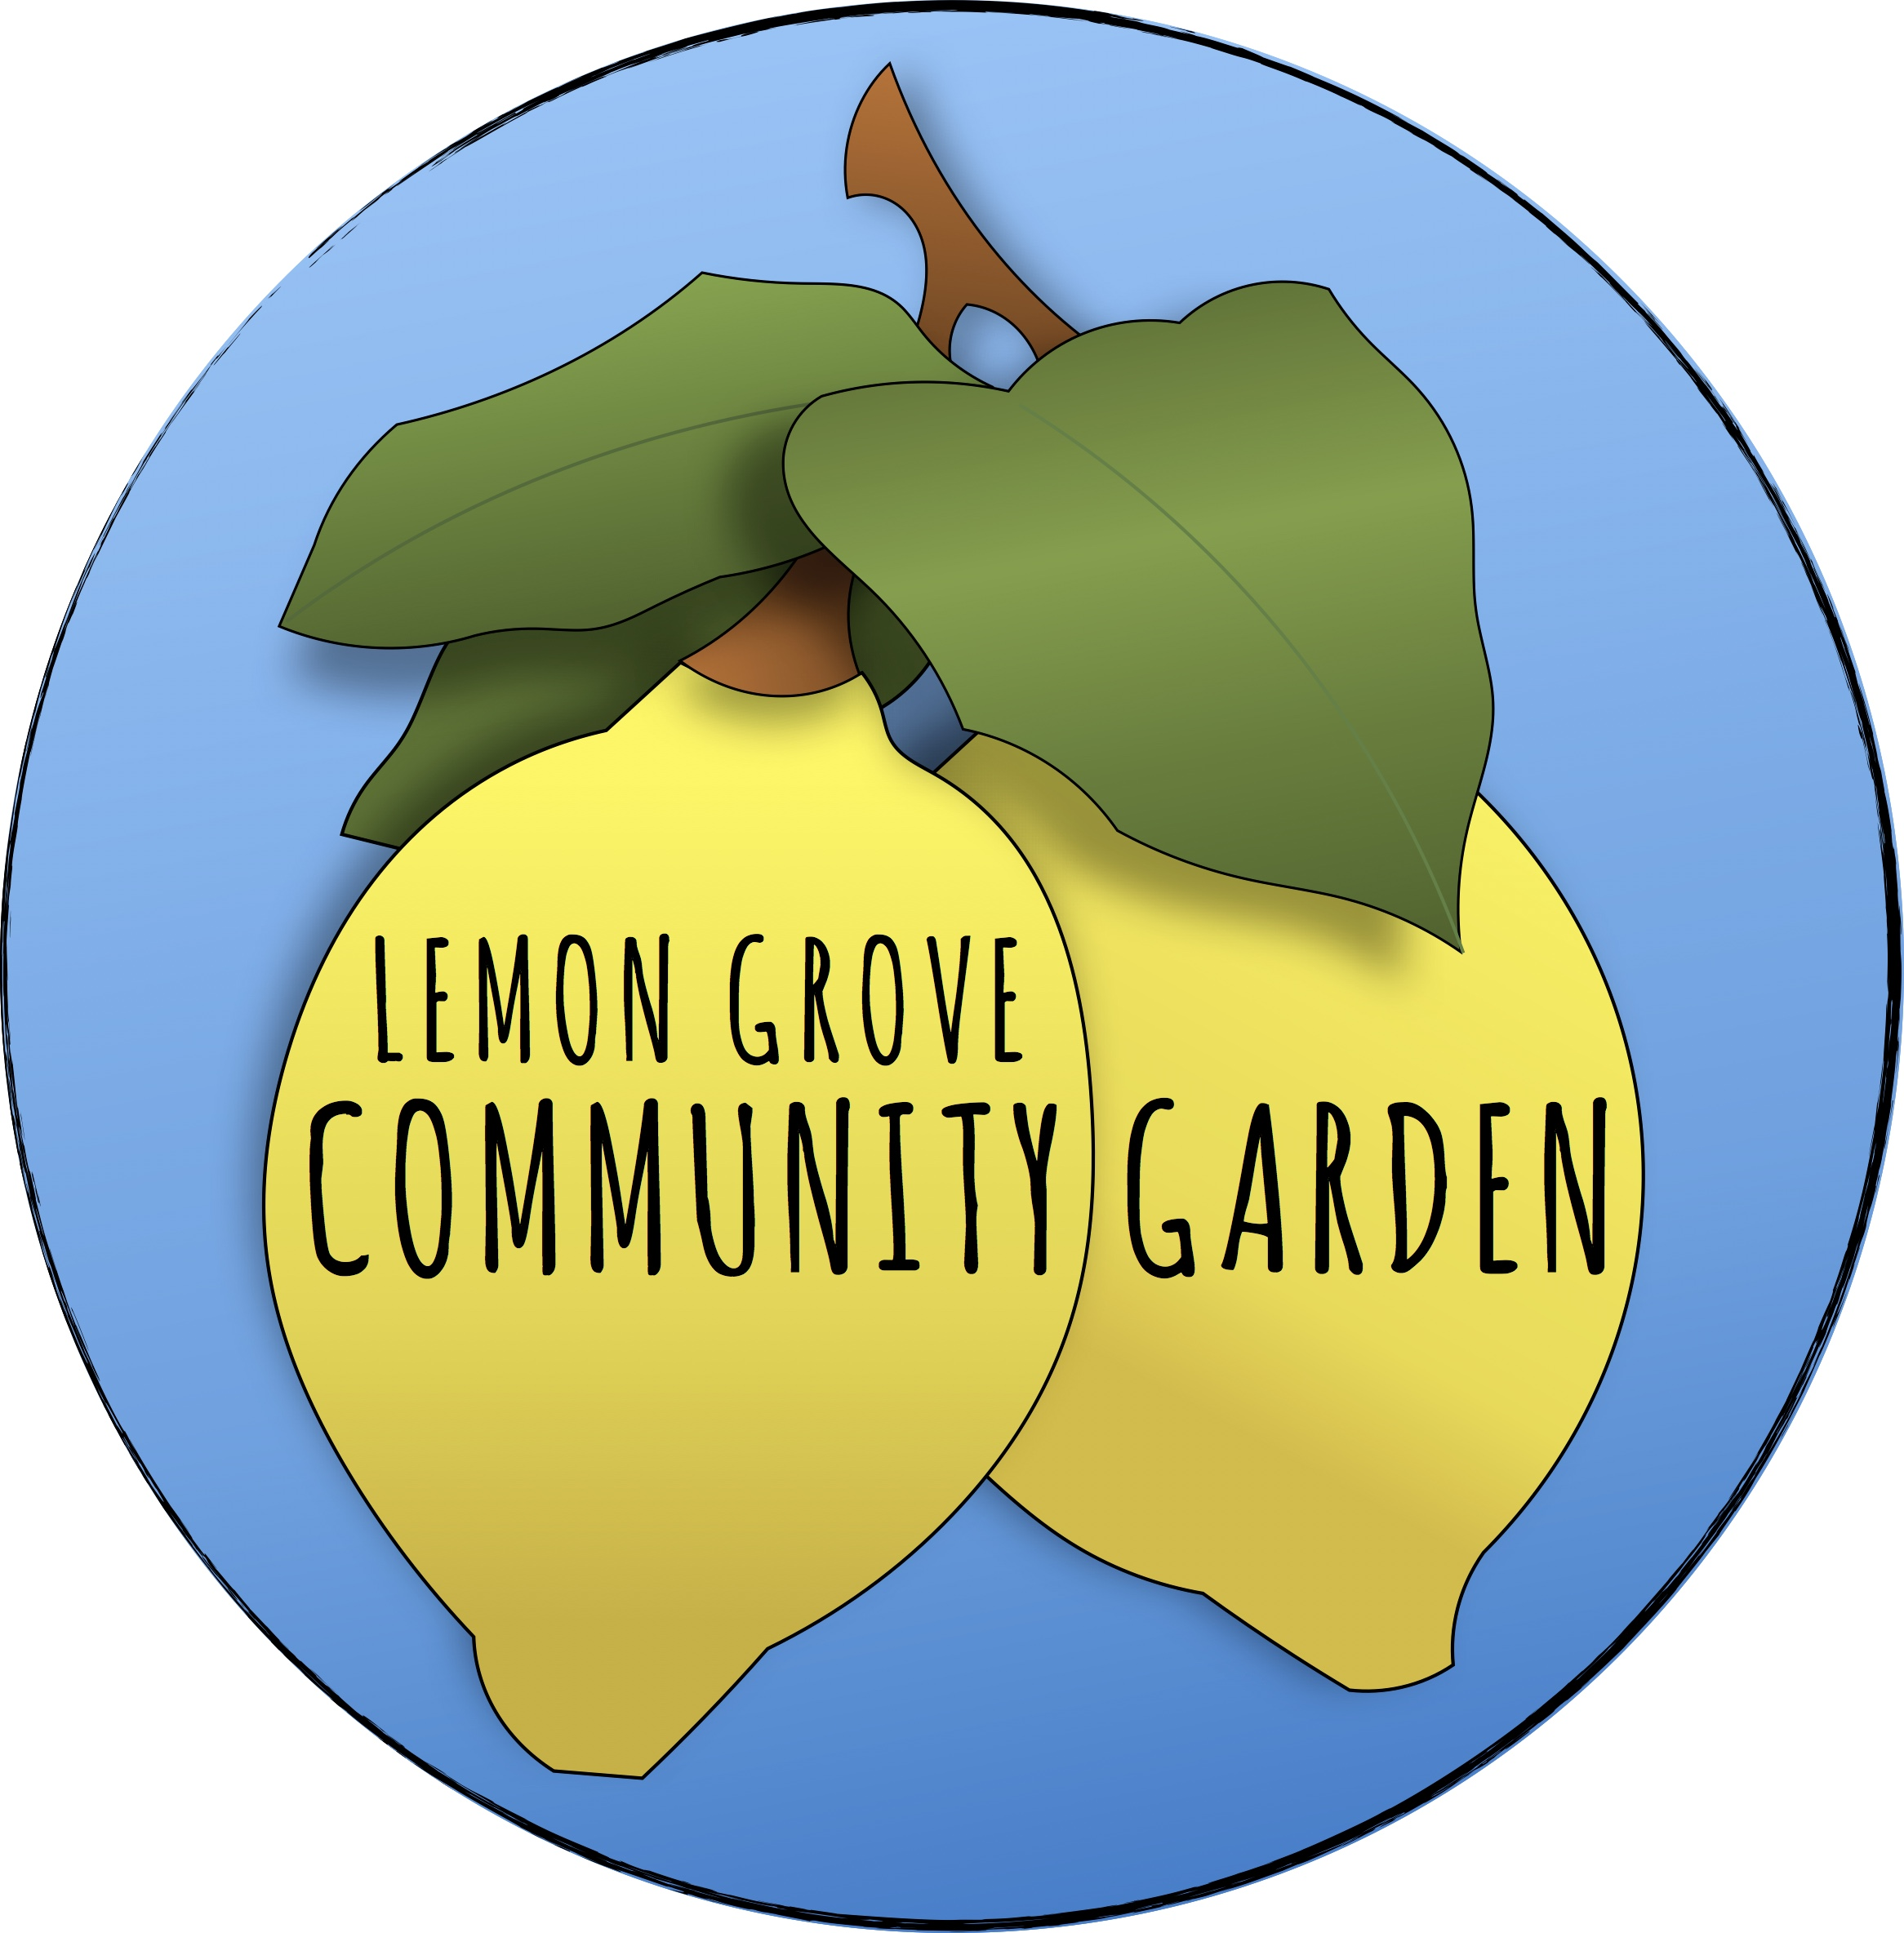 Lemon Grove Community Garden Group Forms